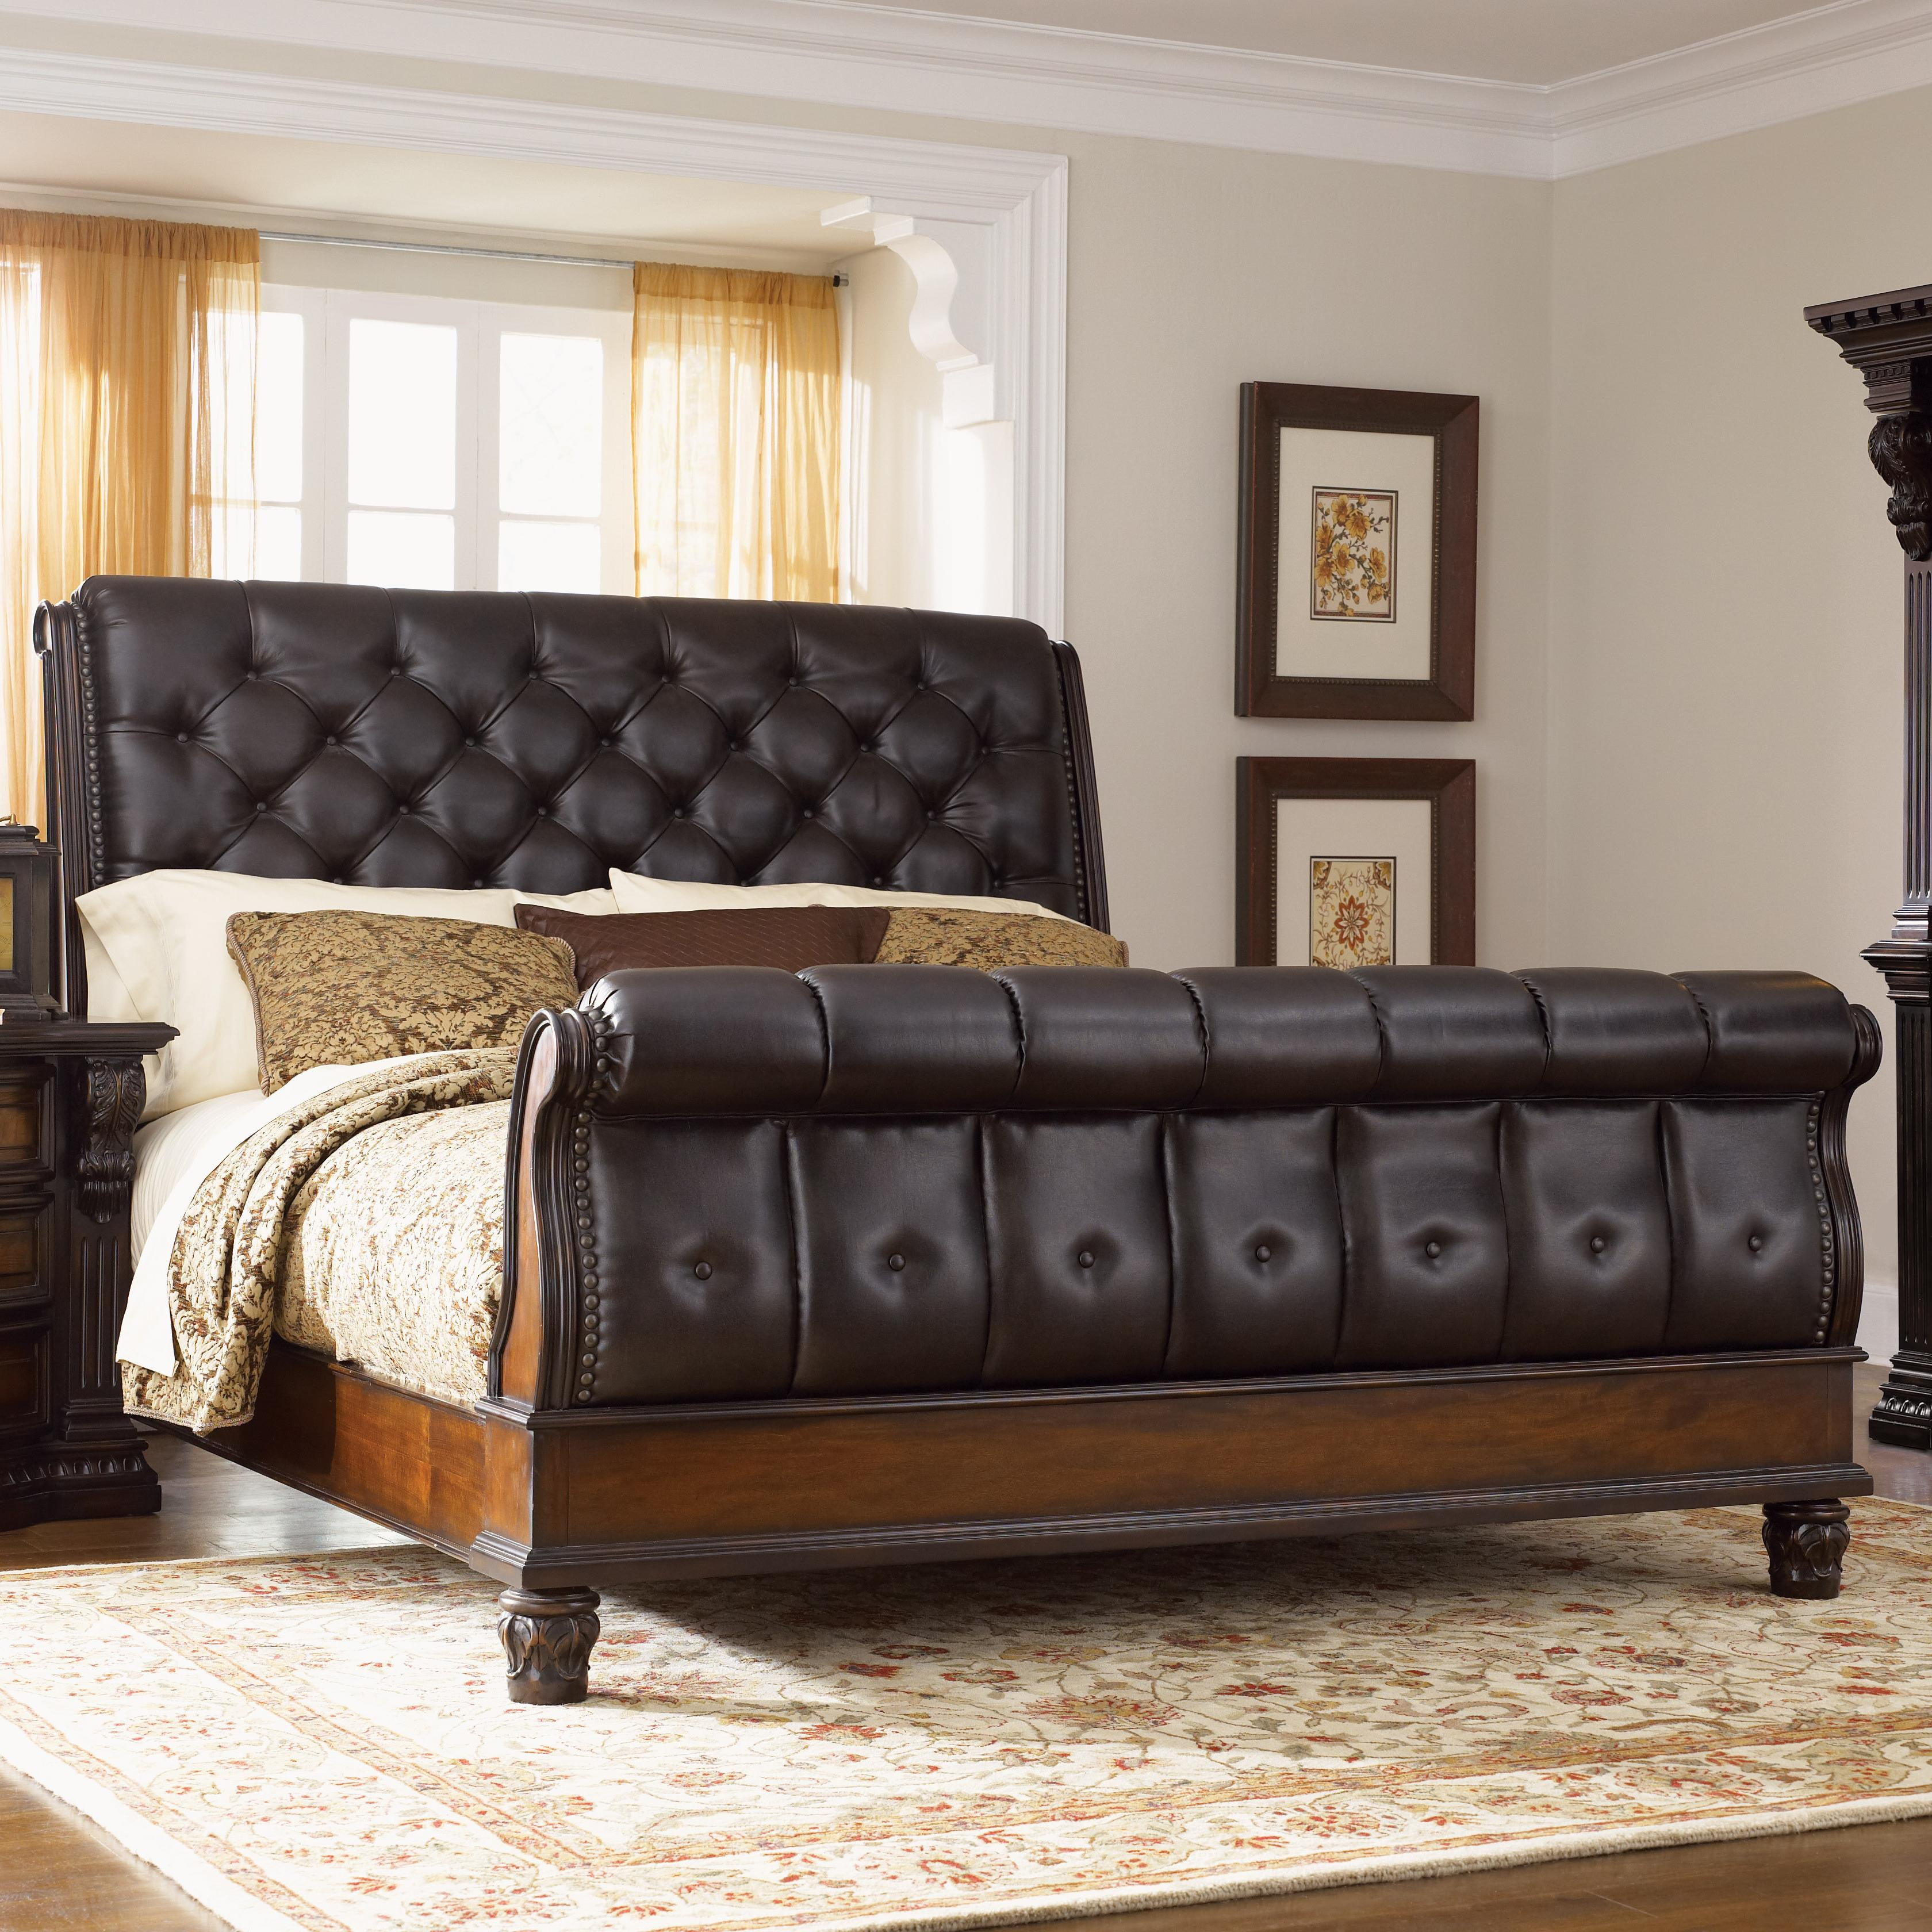 Superbe Fairmont Designs Grand Estates King Sleigh Bed   Item Number: C7002 53+54